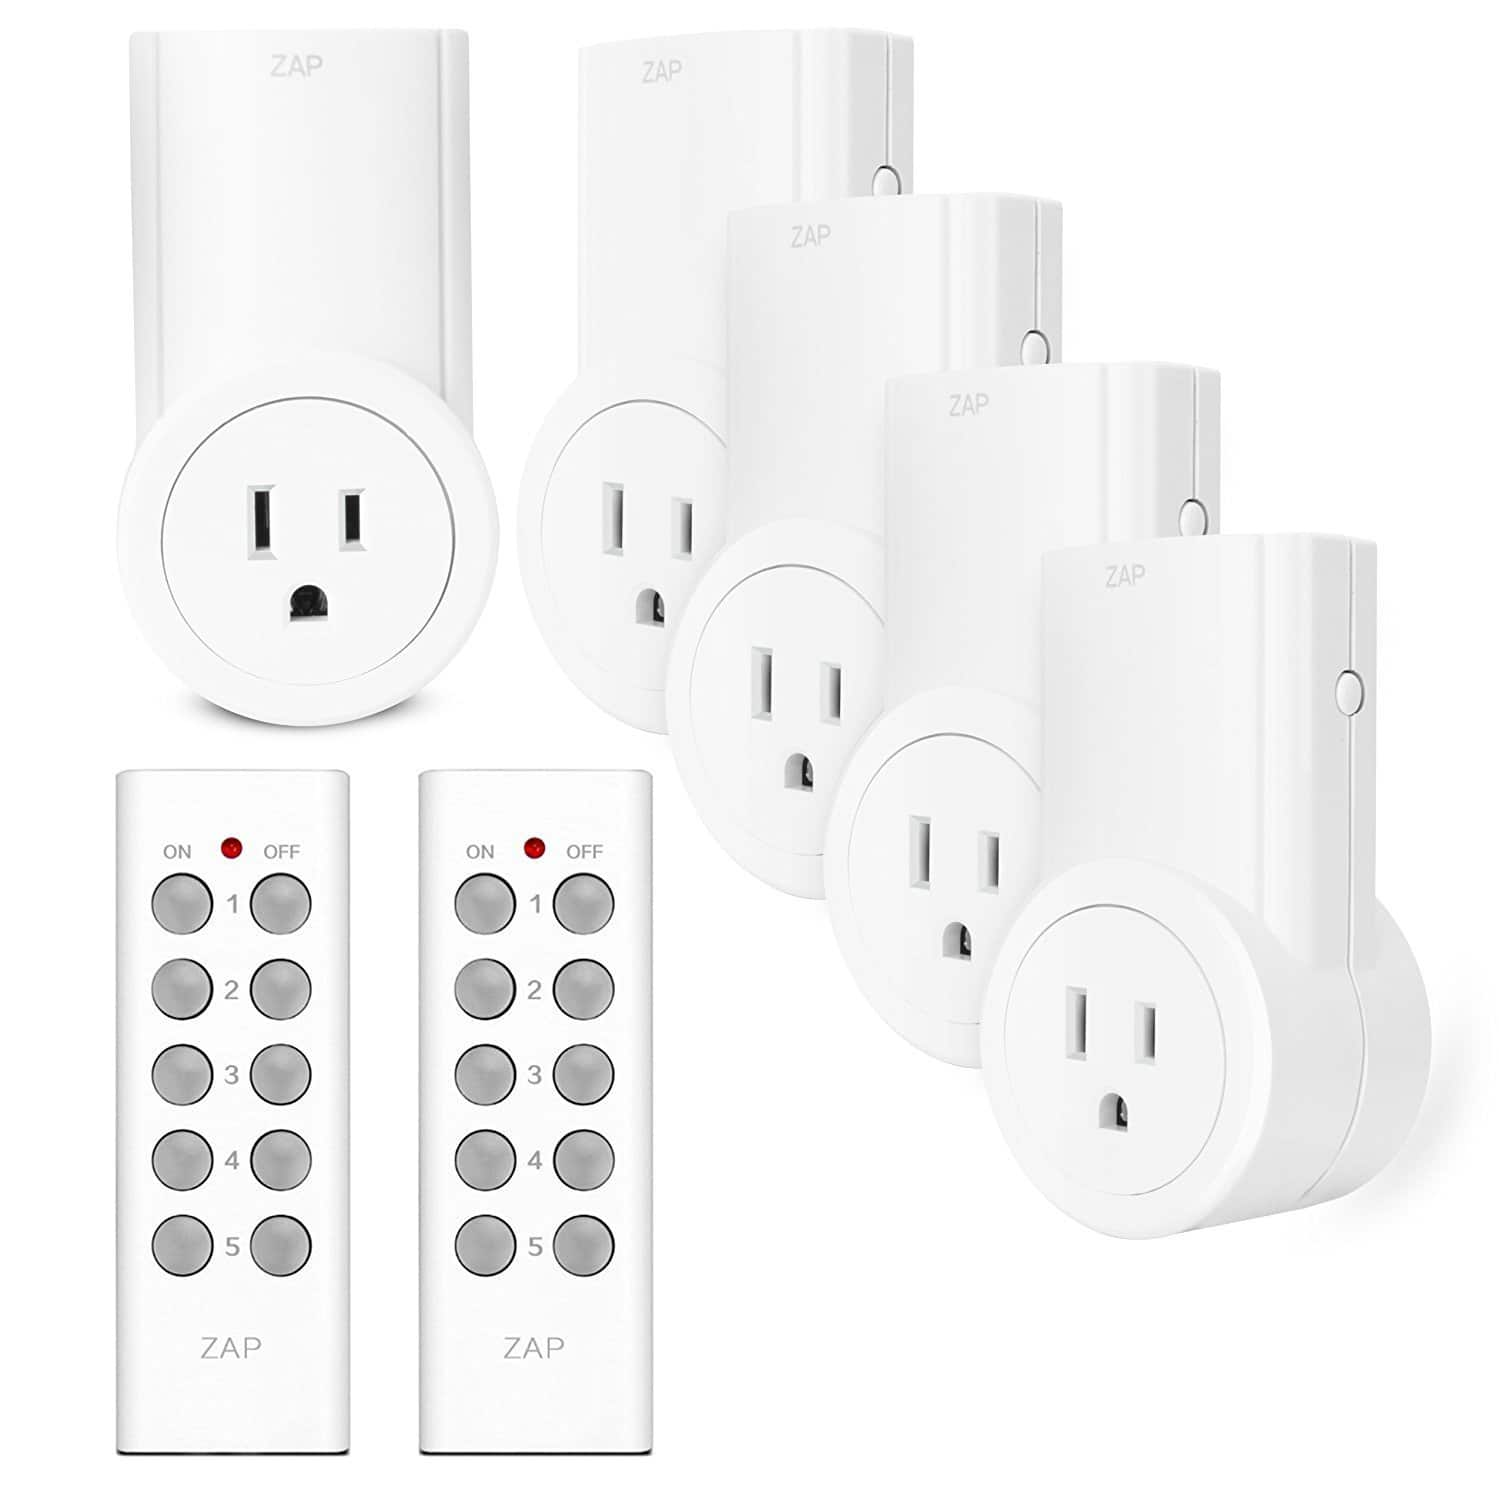 5-Pack Etekcity Wireless Outlet Light Switch w/ 2 Remotes $21.50 AC @ Amazon